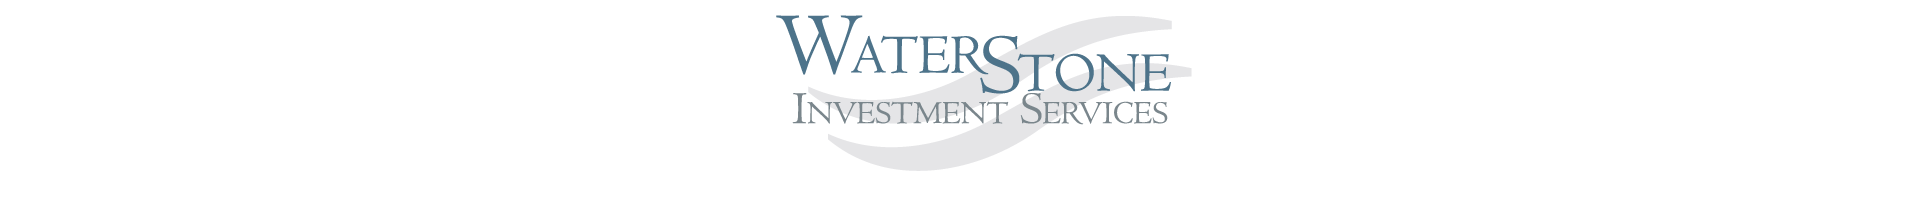 WaterStone Investment Services